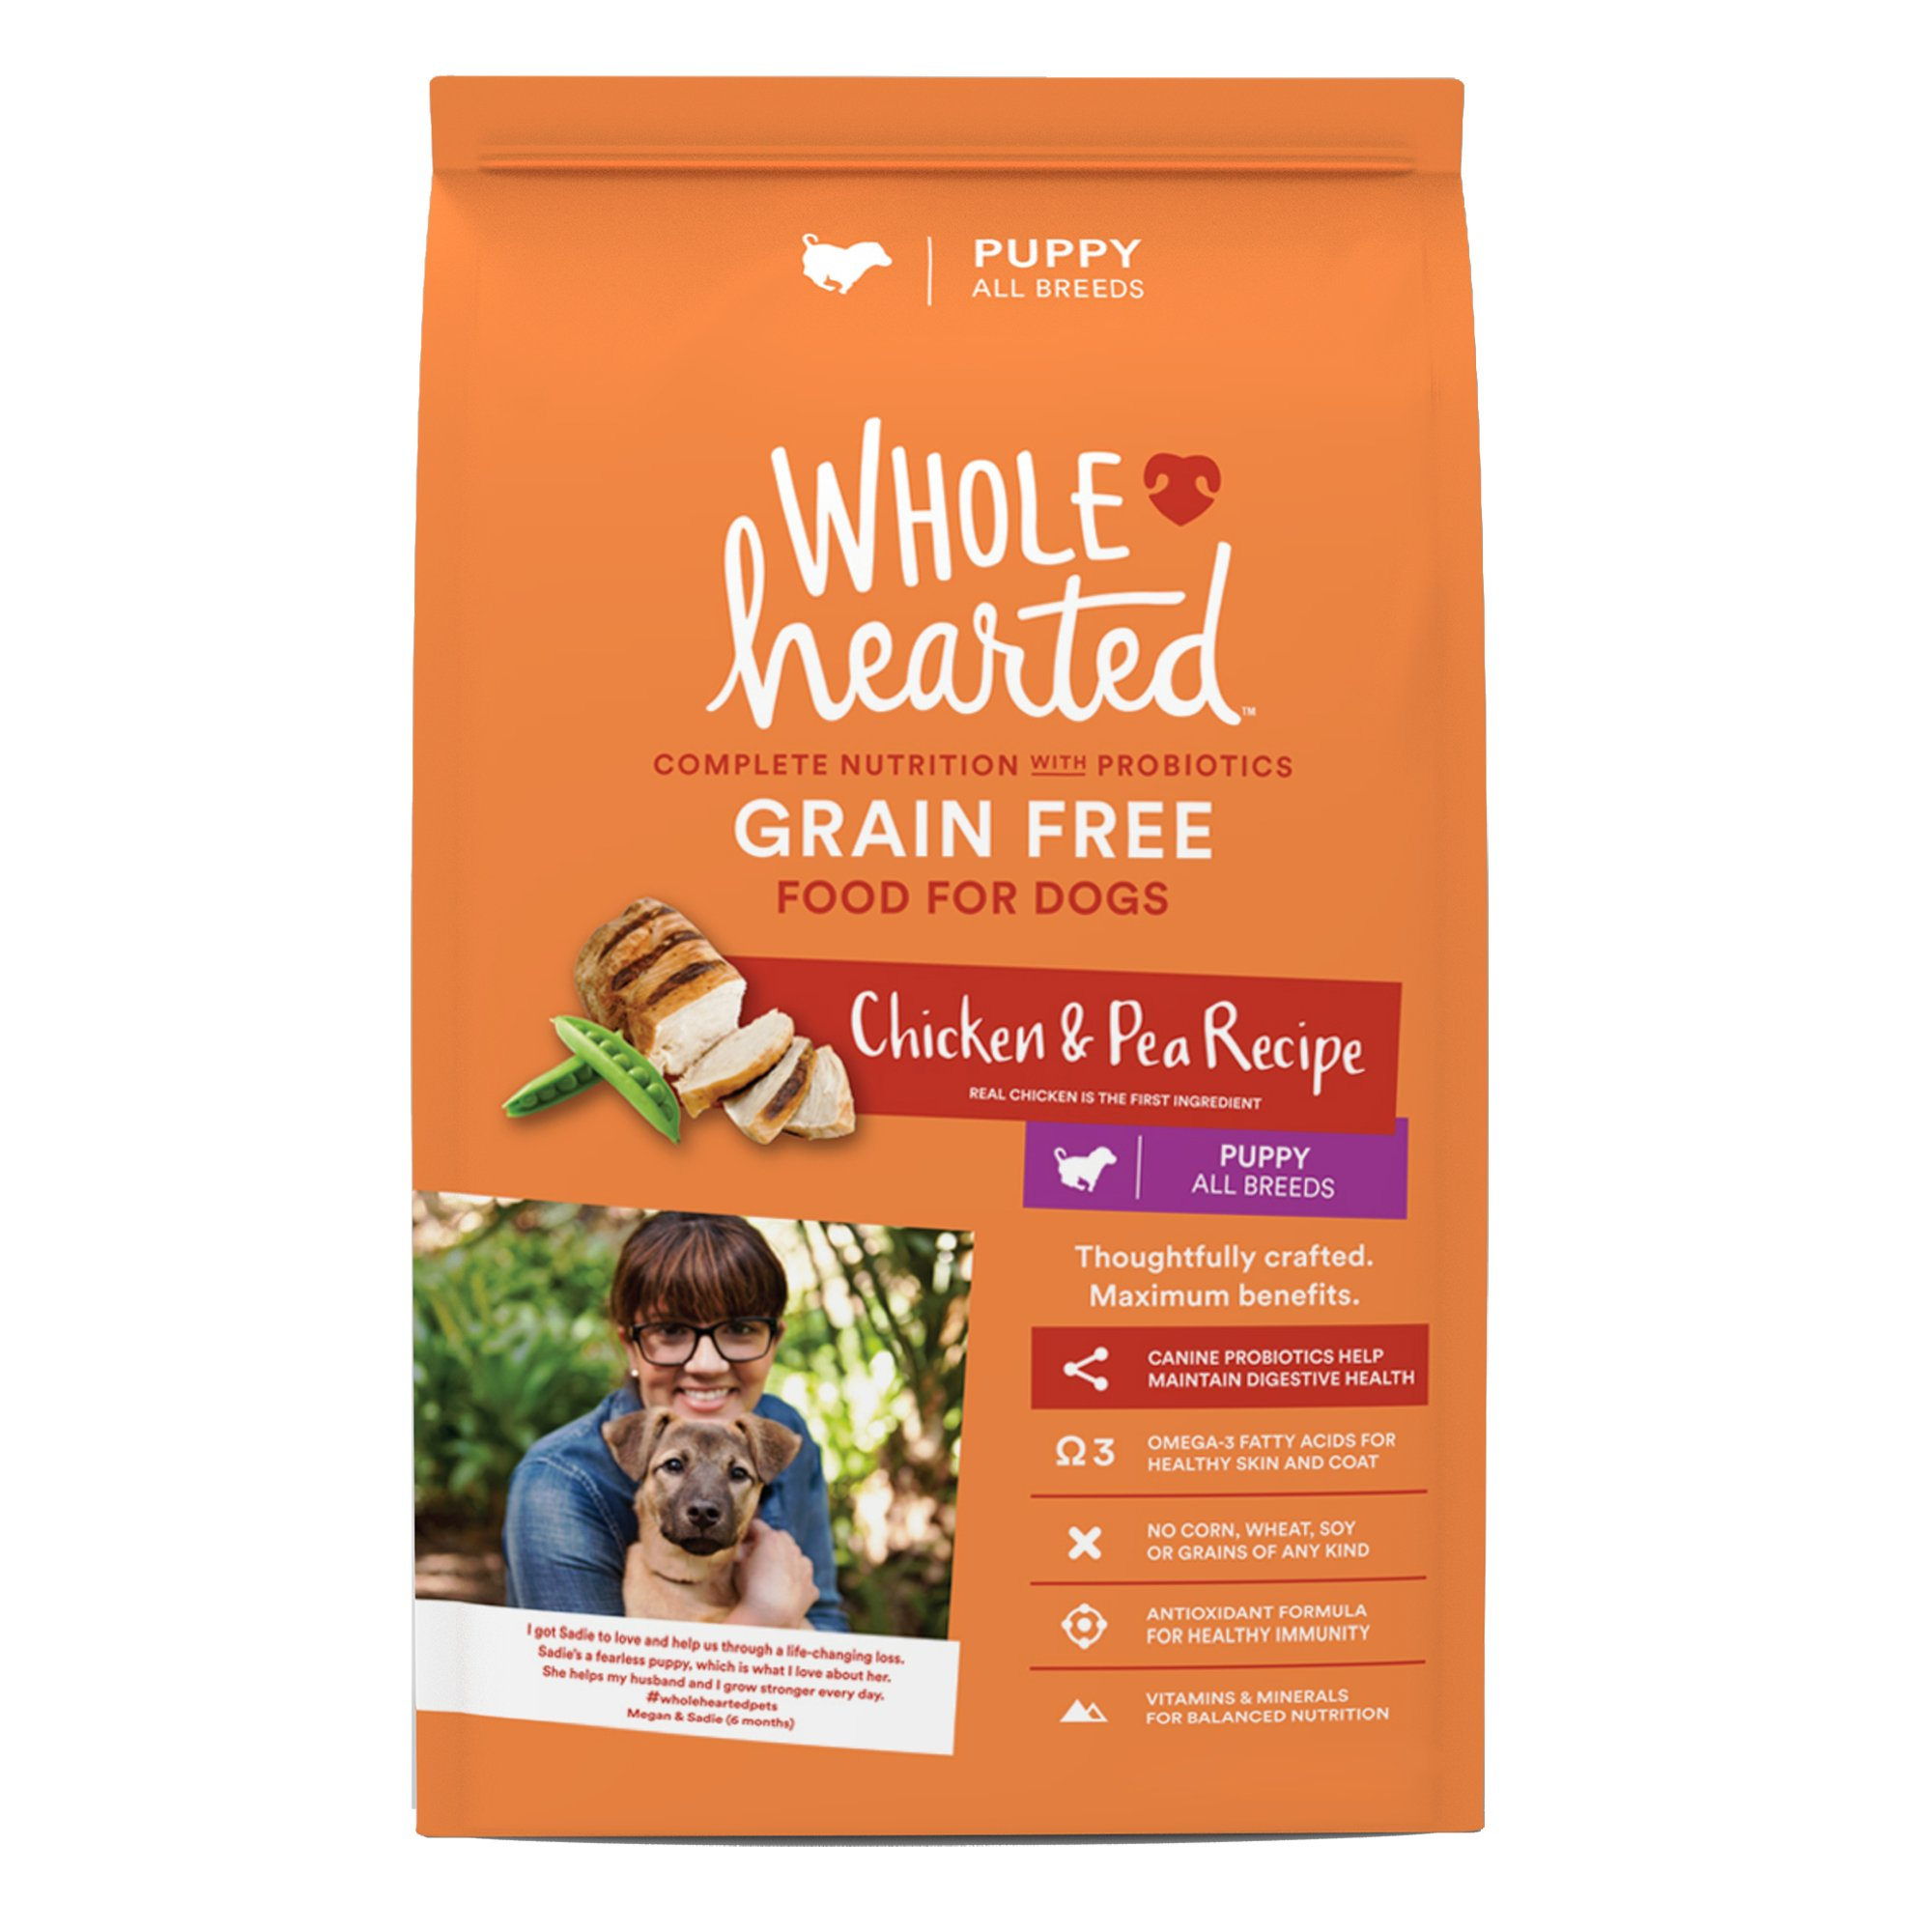 Buy Blue Buffalo basics Dry & Wet, Grain free, Small & Large breed, Puppy Food, High Protein Dog Foods with natural ingredients and primary flavors.